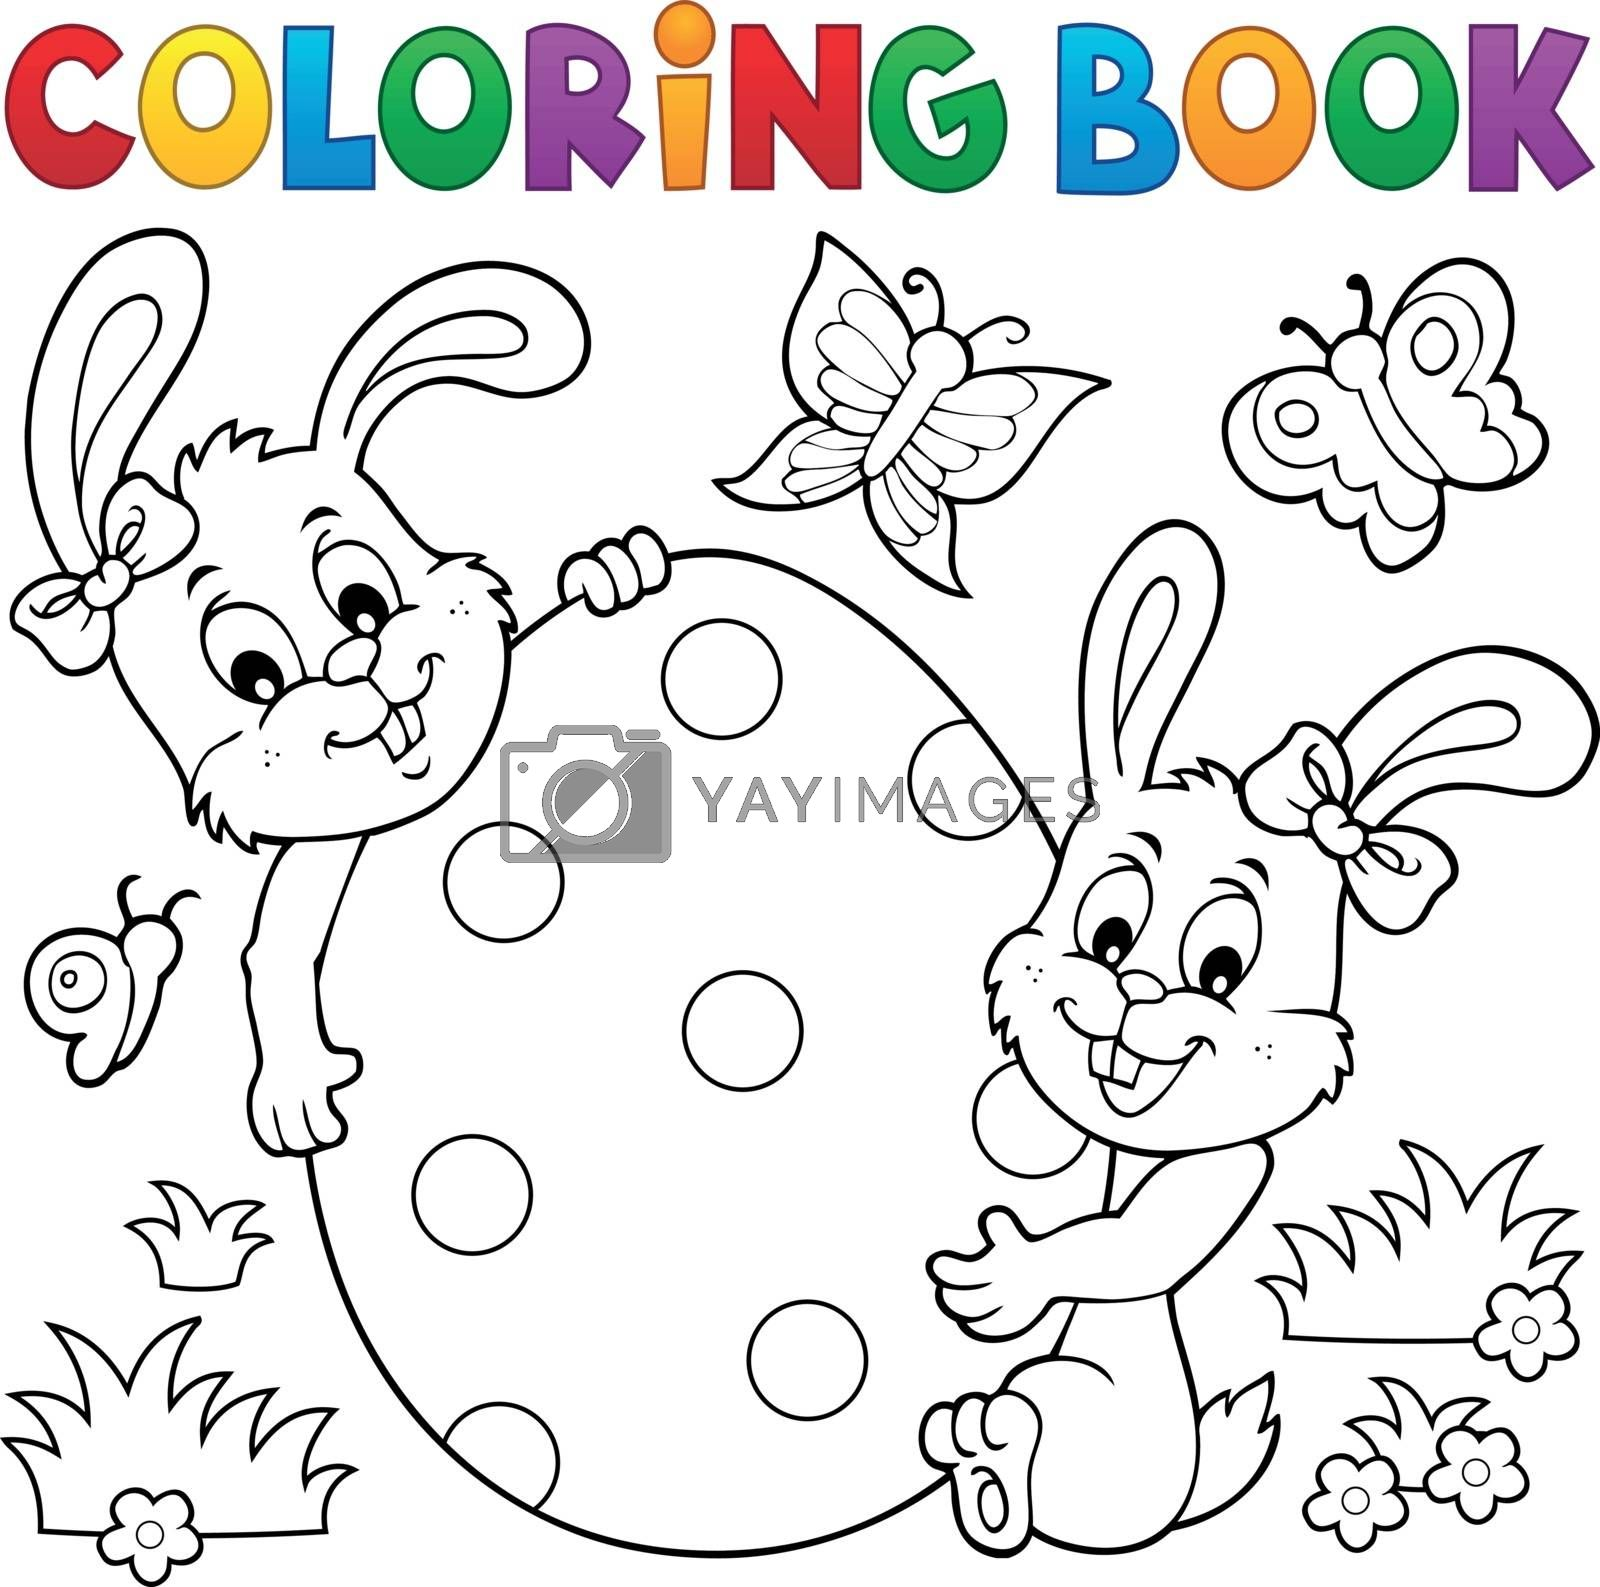 Coloring book Easter egg and rabbits - eps10 vector illustration.